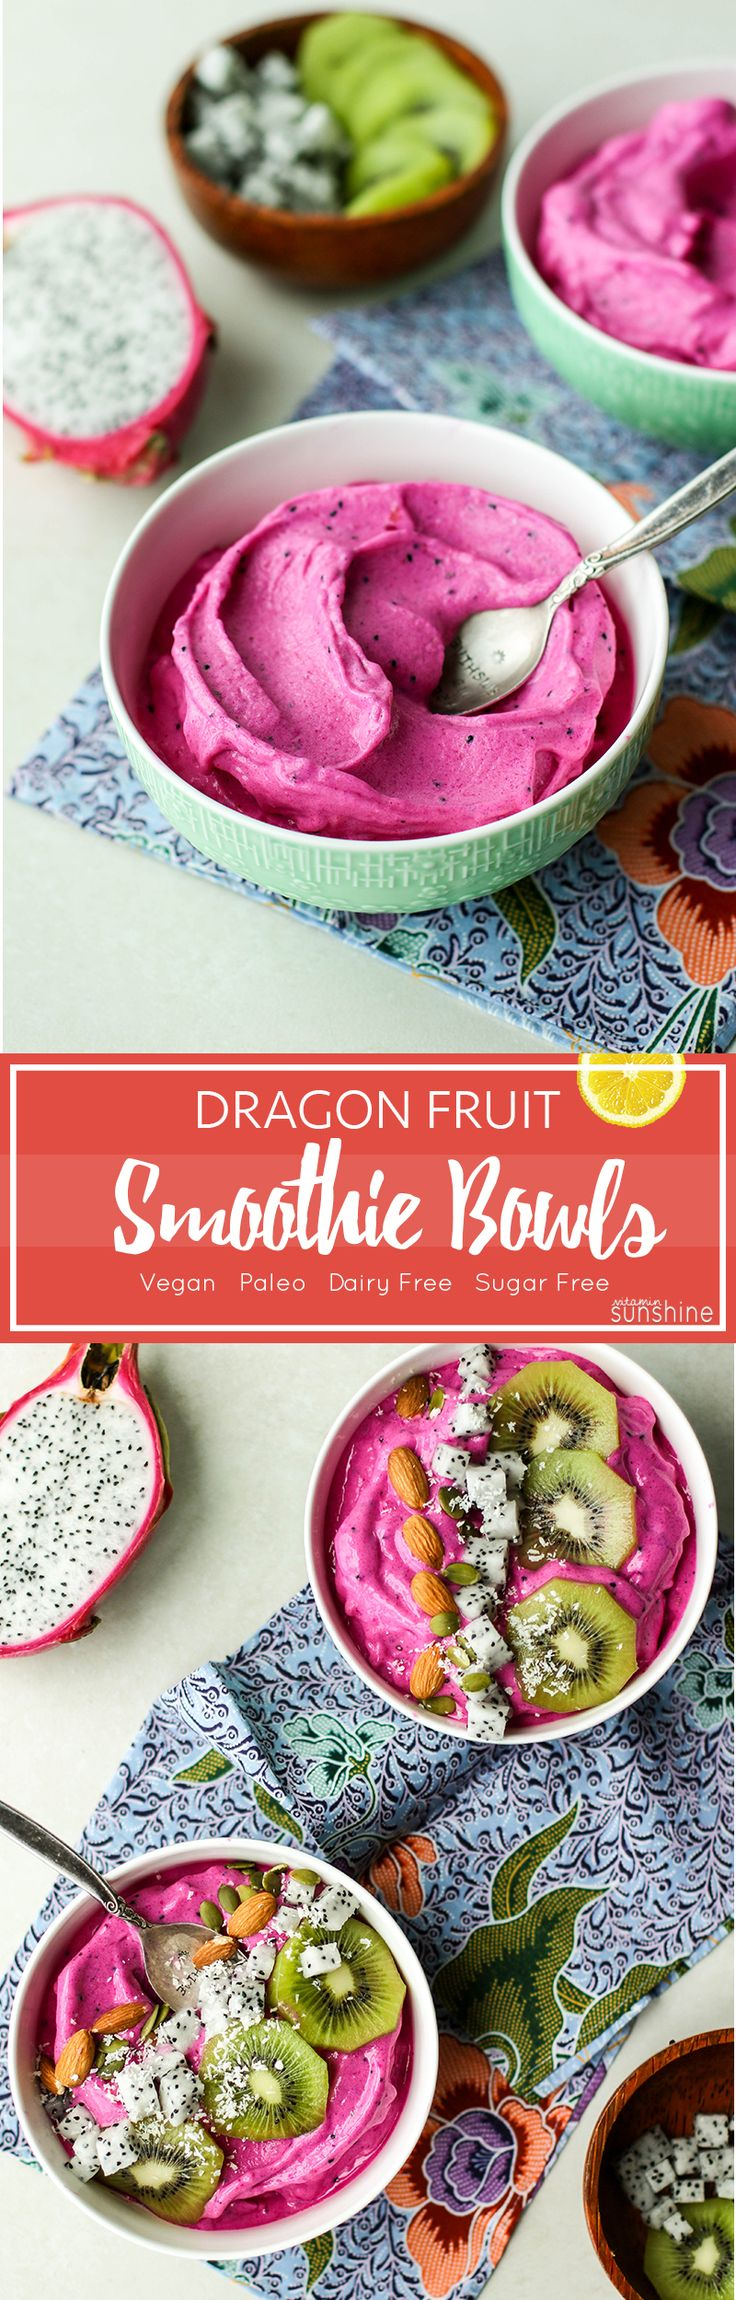 Dragon Fruit Smoothie Bowl + Happy Valentine's Day